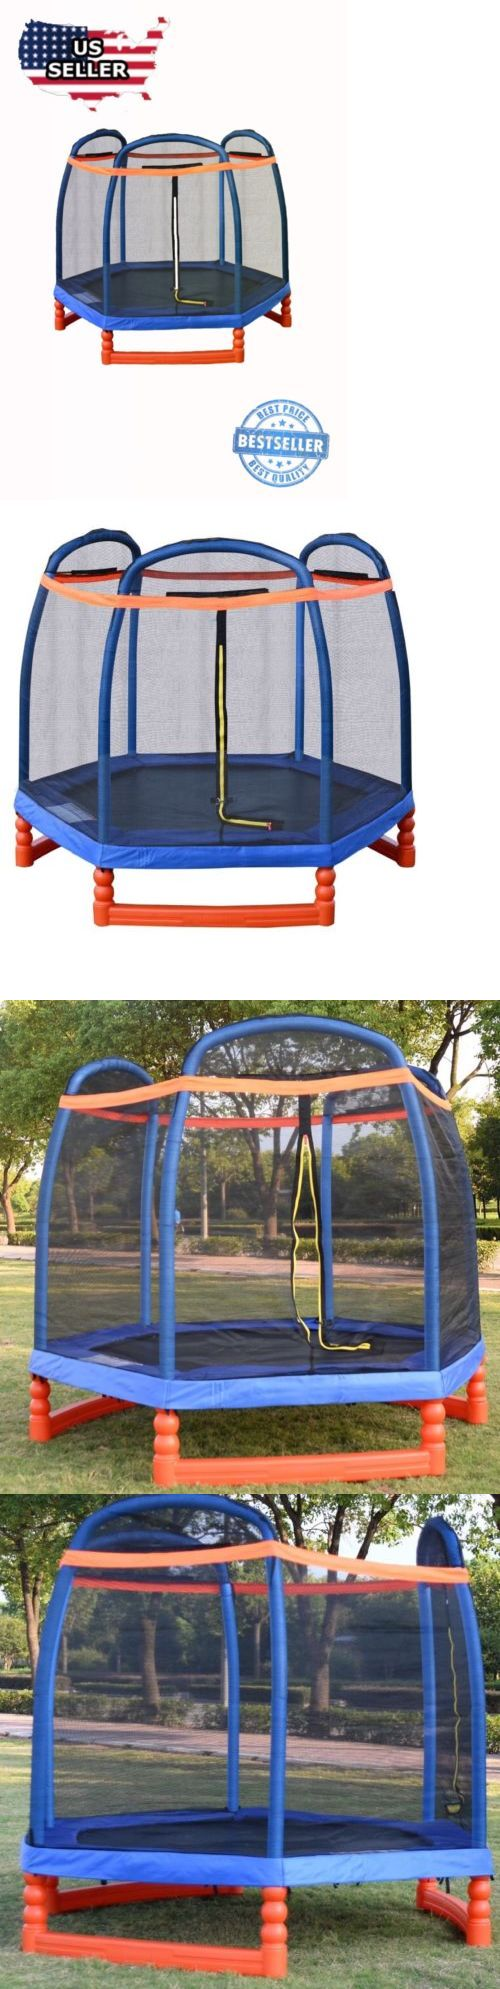 Trampolines 57275: 7Ft Trampoline Combo W Safety Enclosure Net Indoor Outdoor Bouncer Jump Kids -> BUY IT NOW ONLY: $215 on eBay!